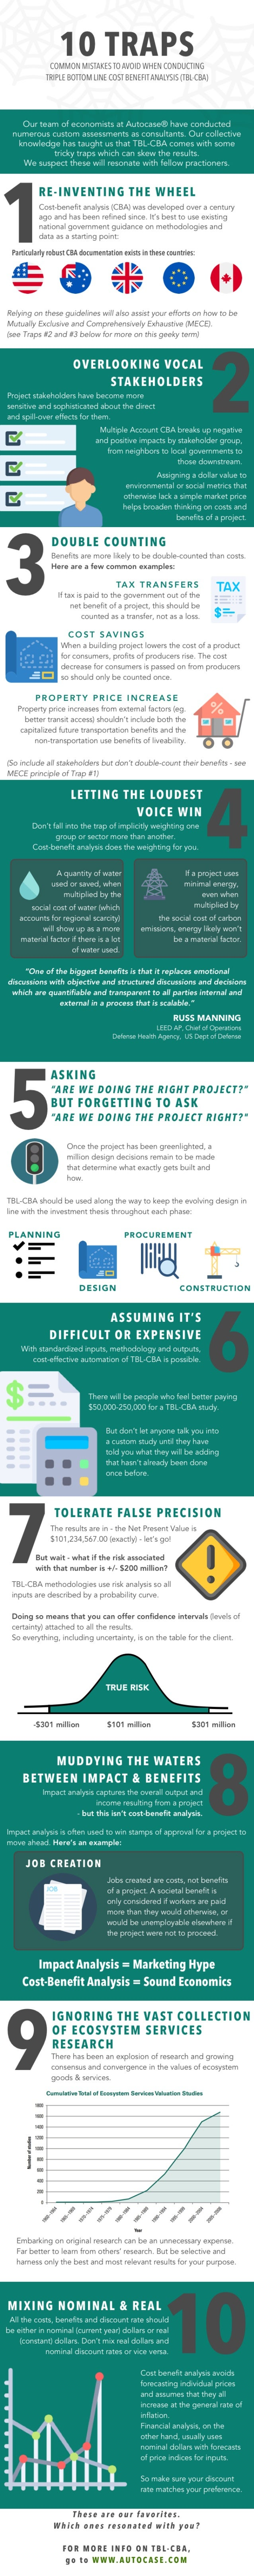 10 traps of tbl-cba infographic